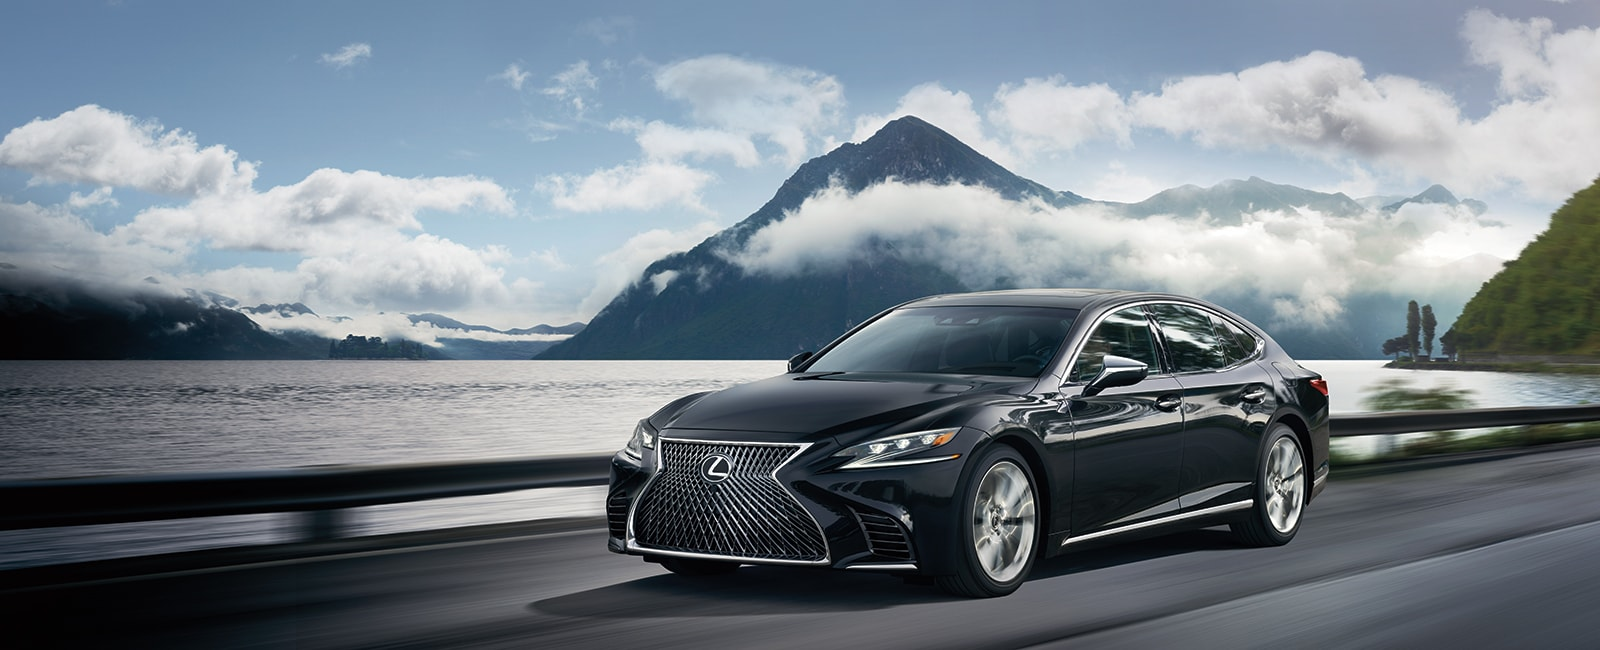 2019 Lexus LS Exterior Features